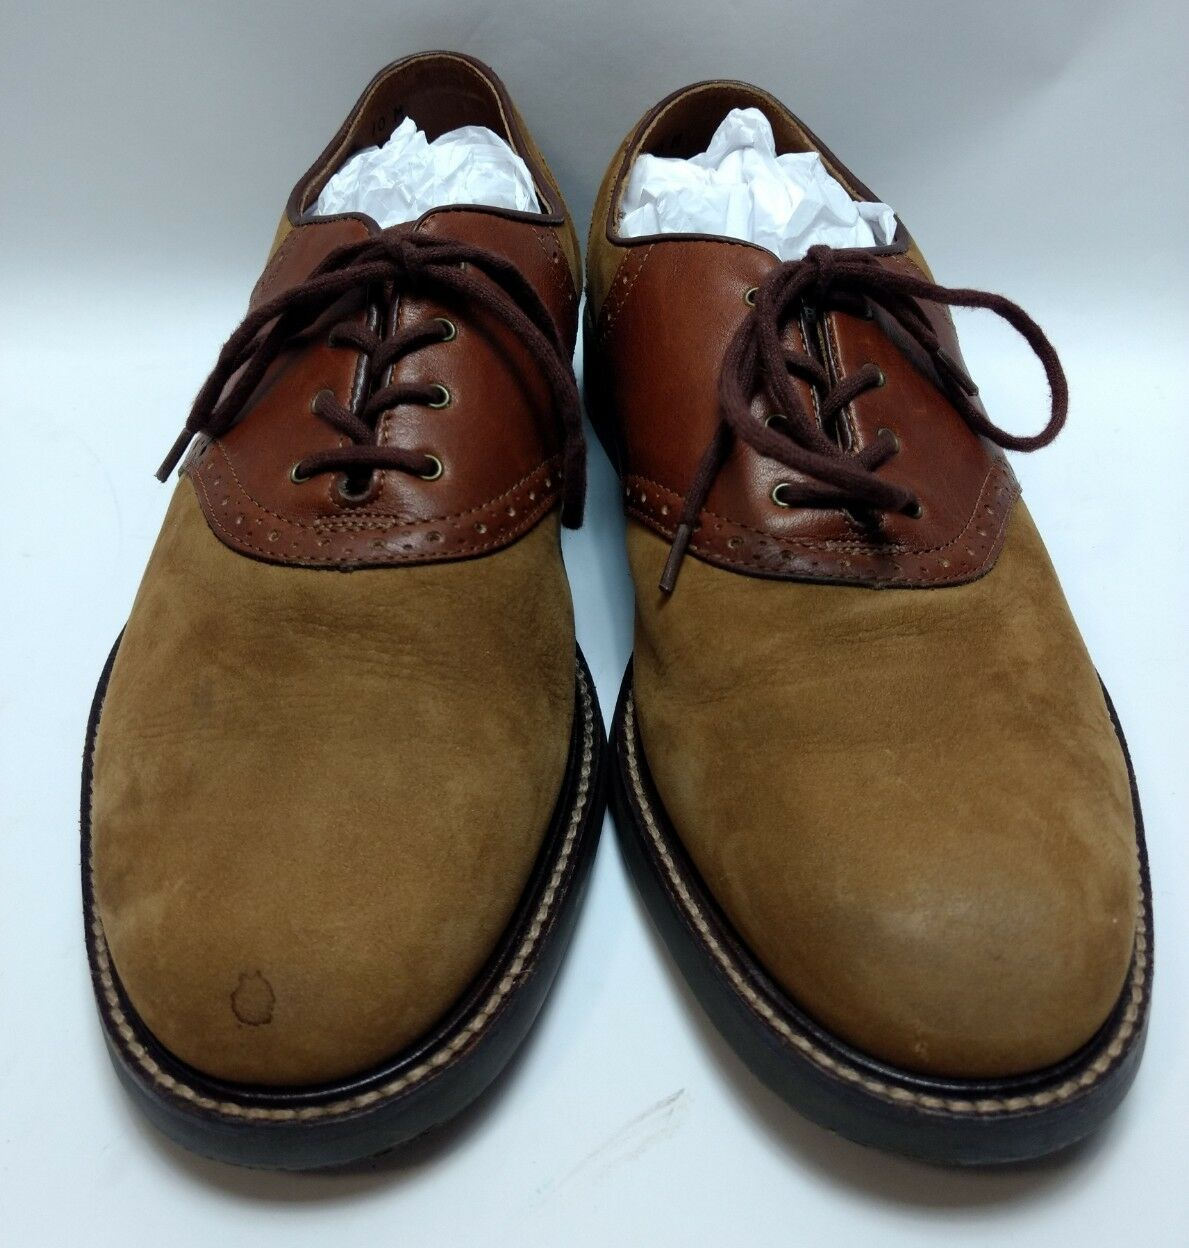 G.H. BASS & M CO. Men's Size 10 M & Brown Sueded Leather Upper Oxfords 044c85